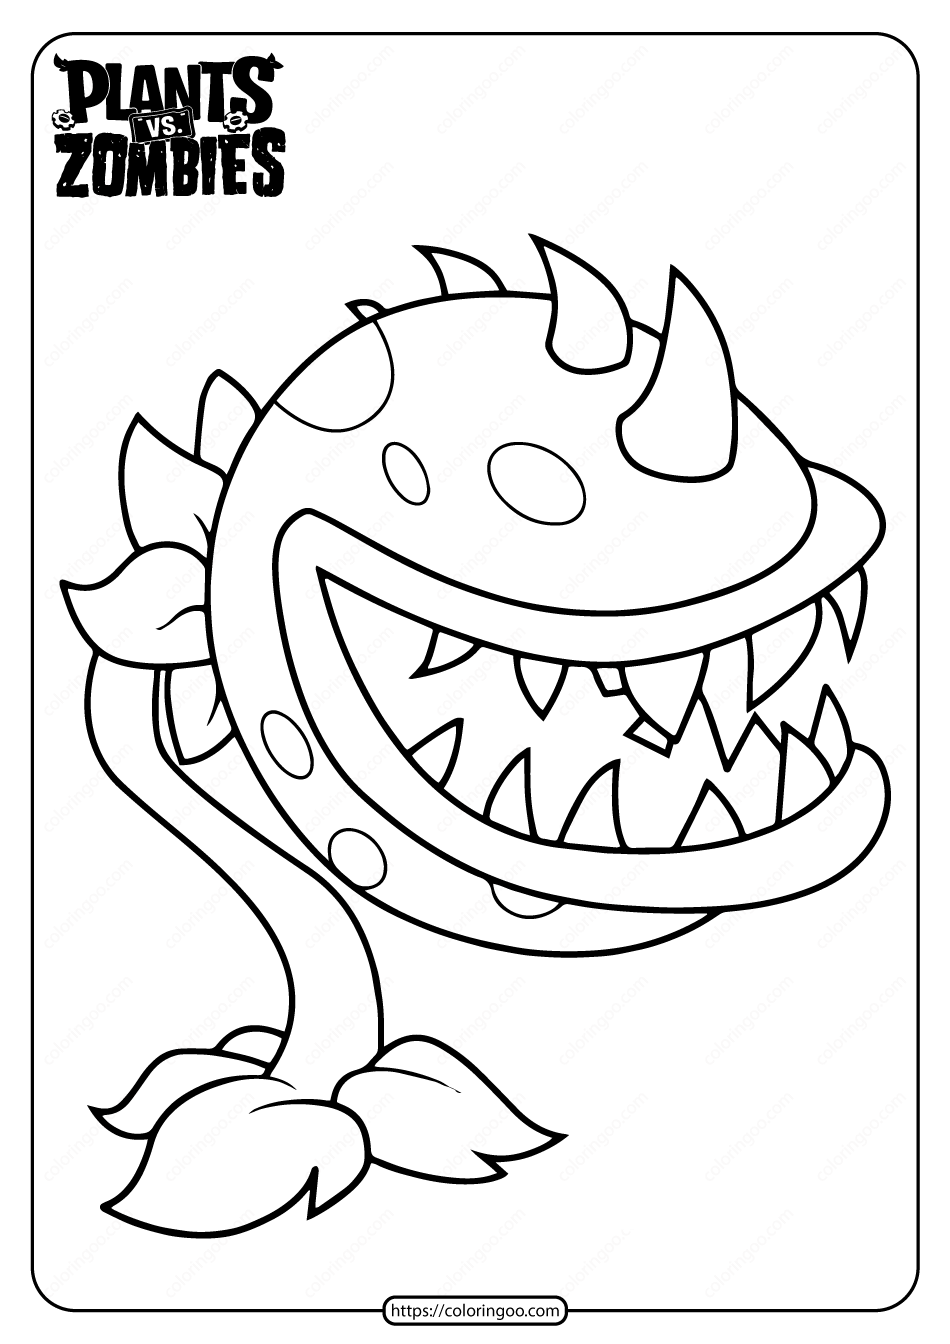 Plants Vs Zombies Chomper Pdf Coloring Page In 2020 Plants Vs Zombies Birthday Party Coloring Pages Plant Zombie